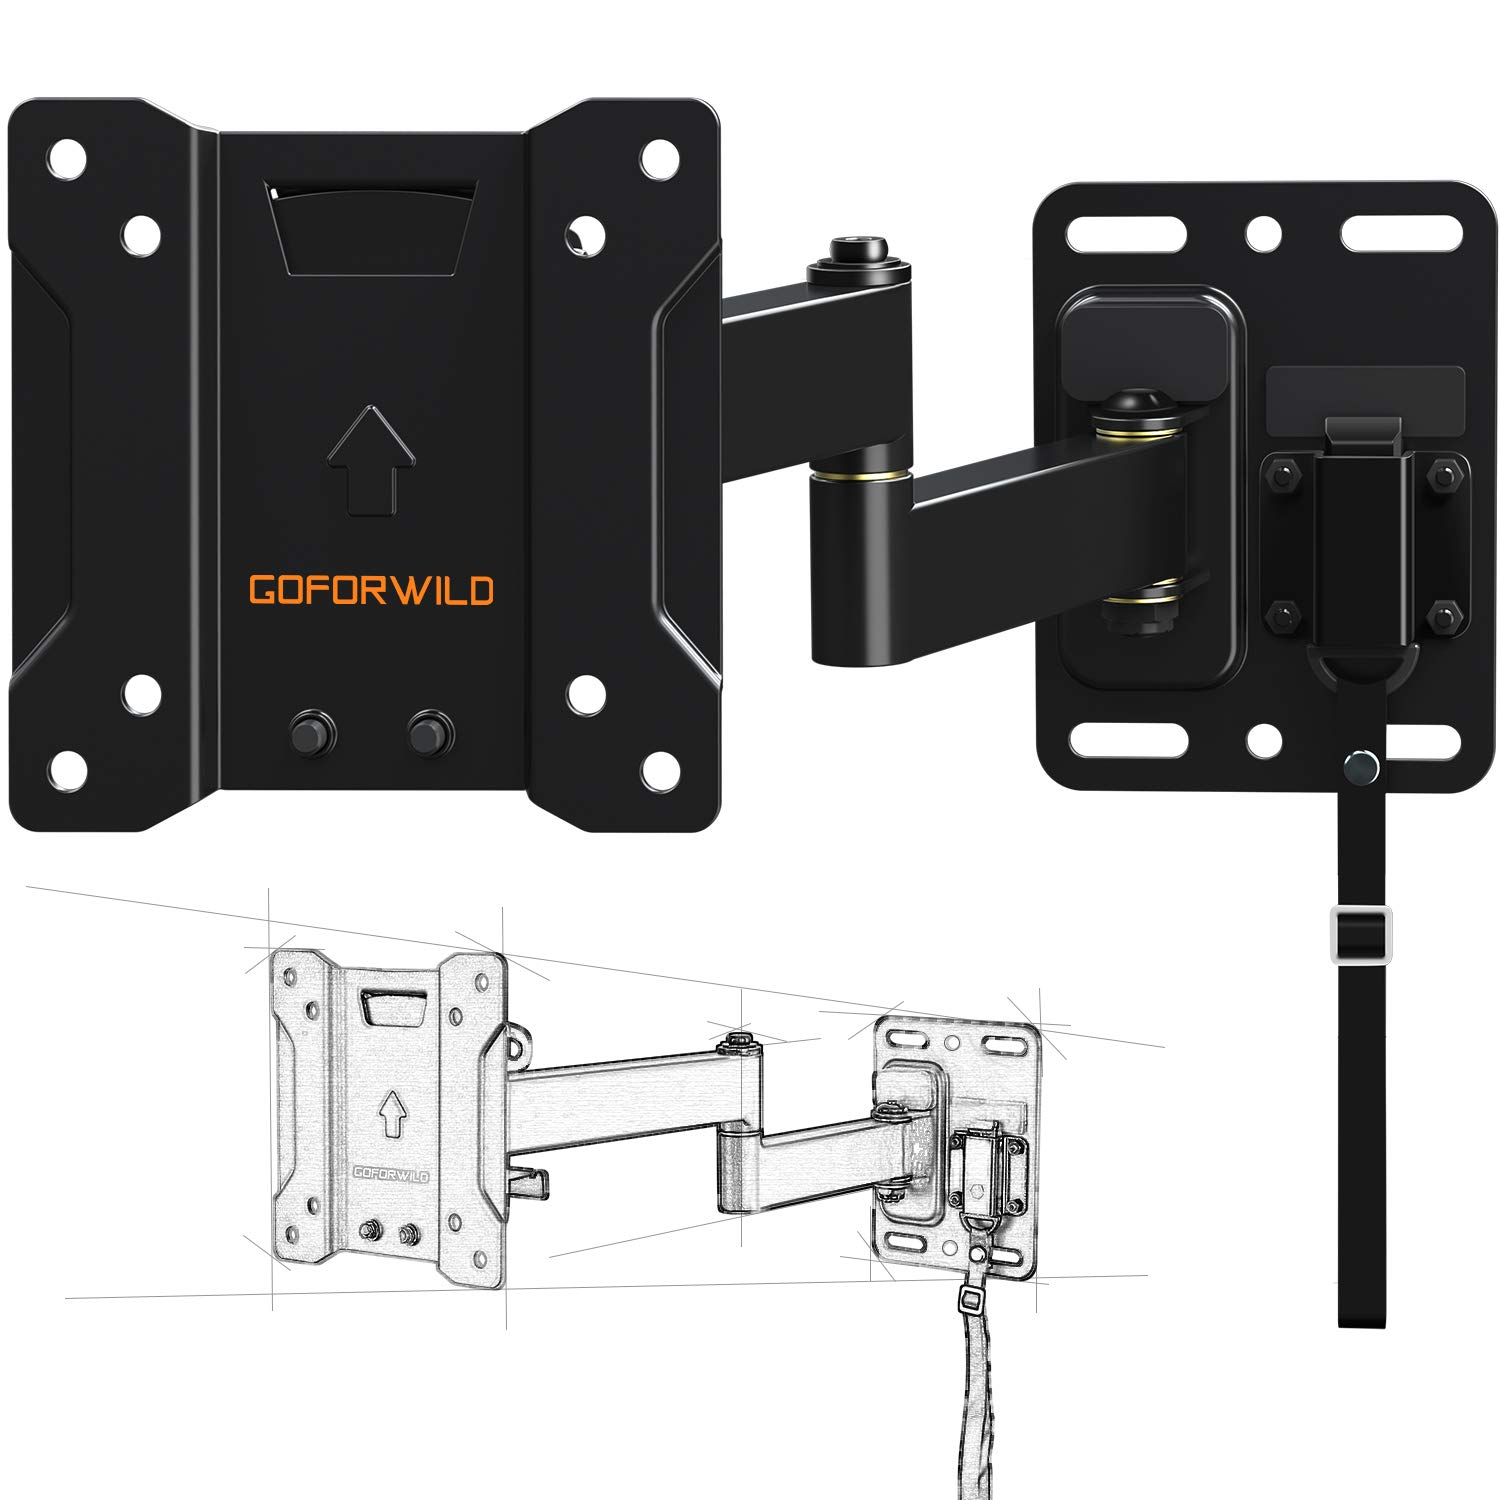 RV TV Mount for Camper Full Motion Lockable TV Wall Mount for 10-26 Inch LED LCD OLED Plasma Flat Screen TV, RV Mount on Motor Home Camper Truck Marine Boat Trailer, Earthquake Safety